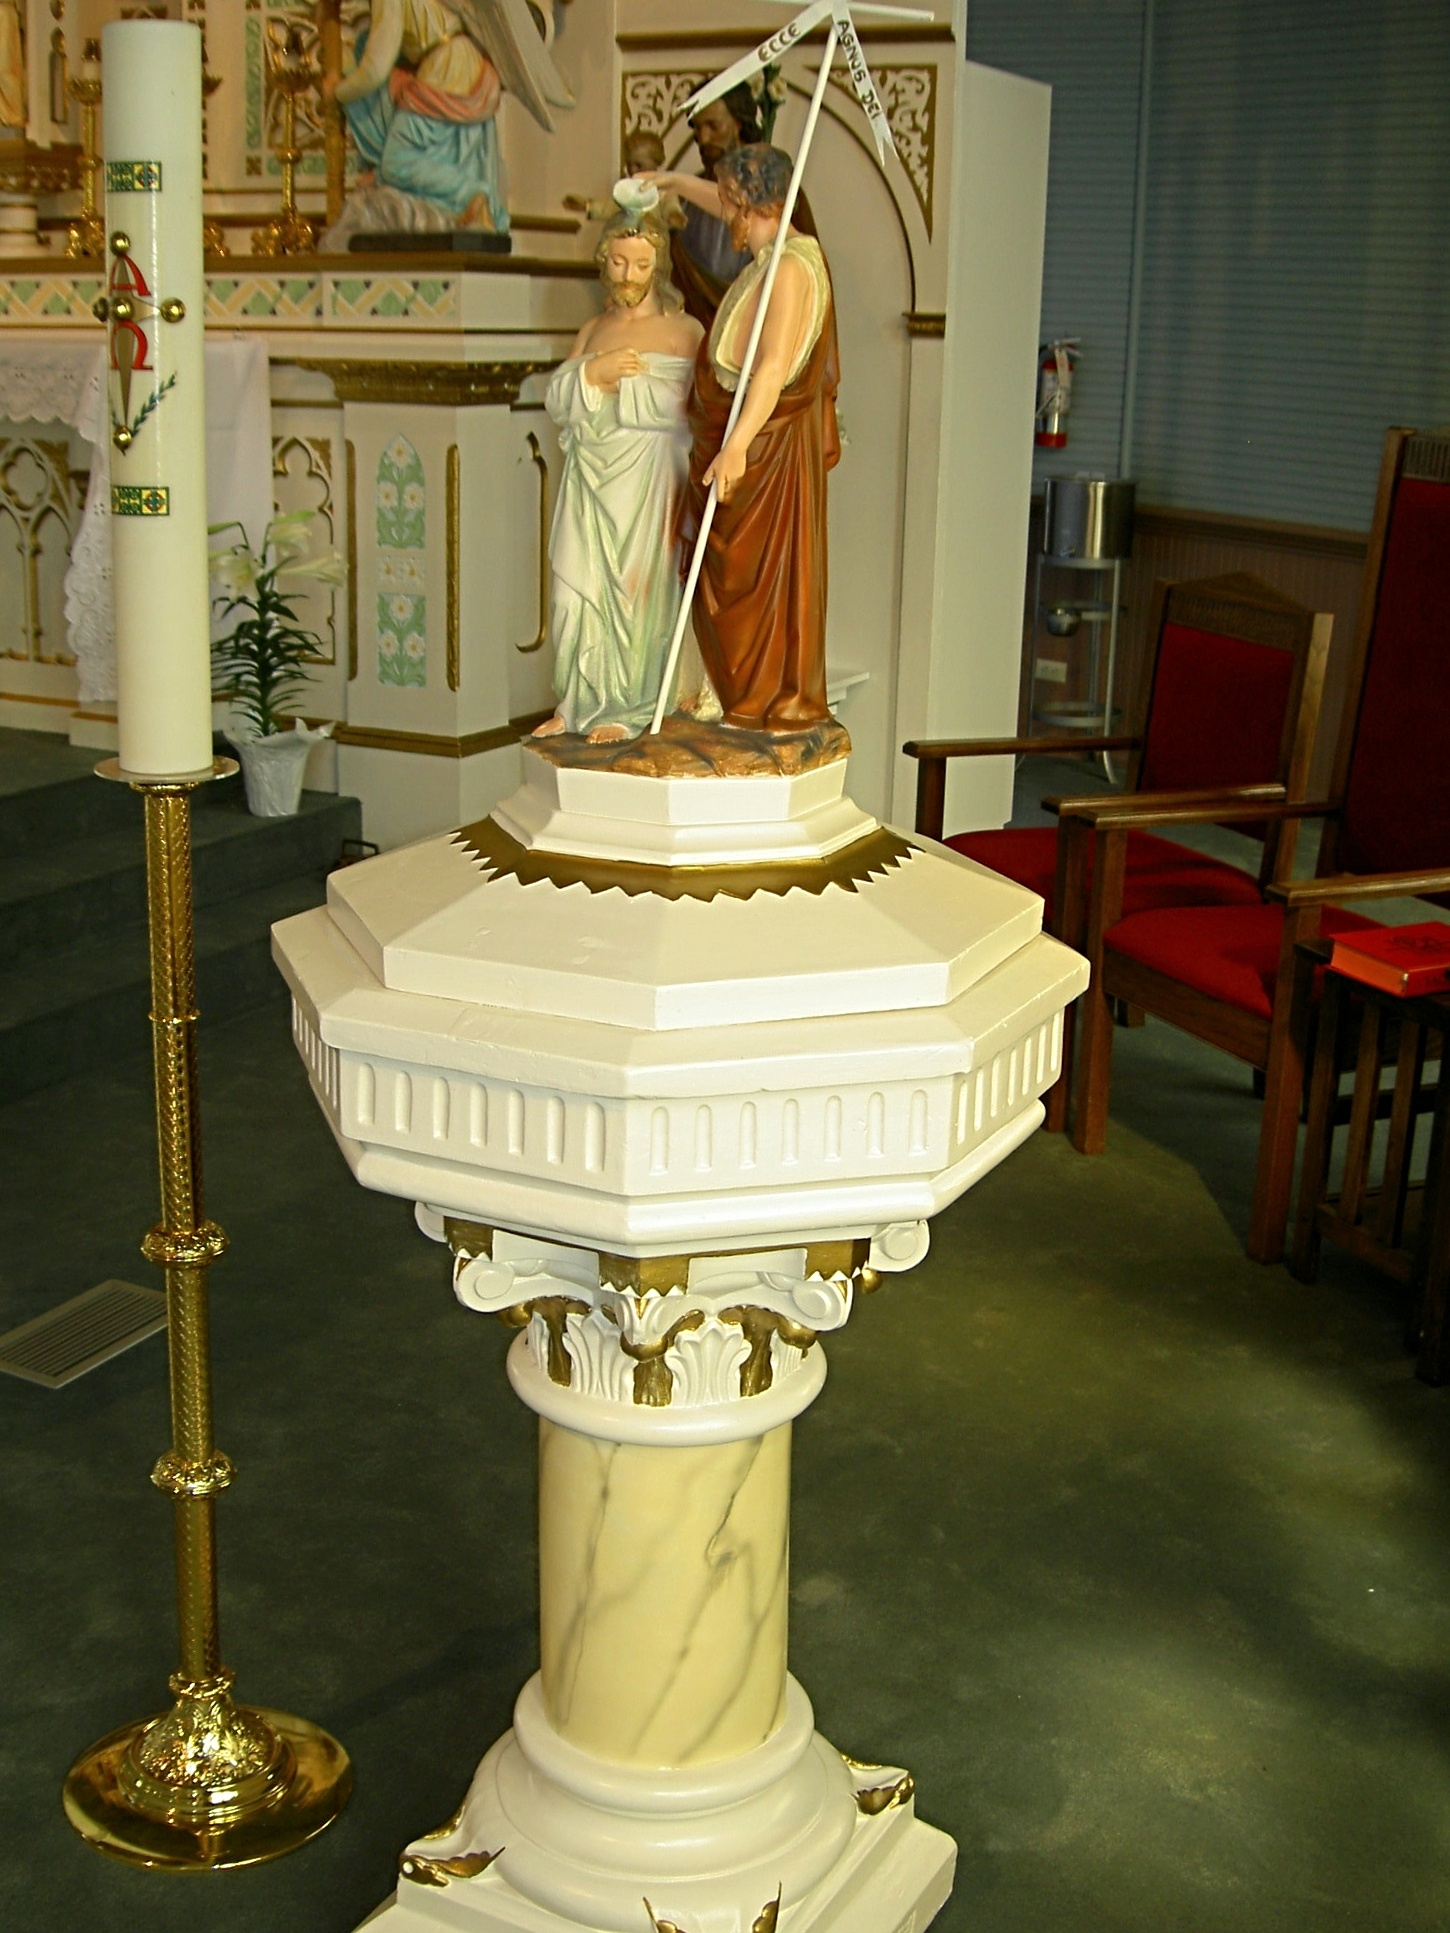 St._Marys_Catholic_Church_Baptismal_Font-542554-edited.jpg